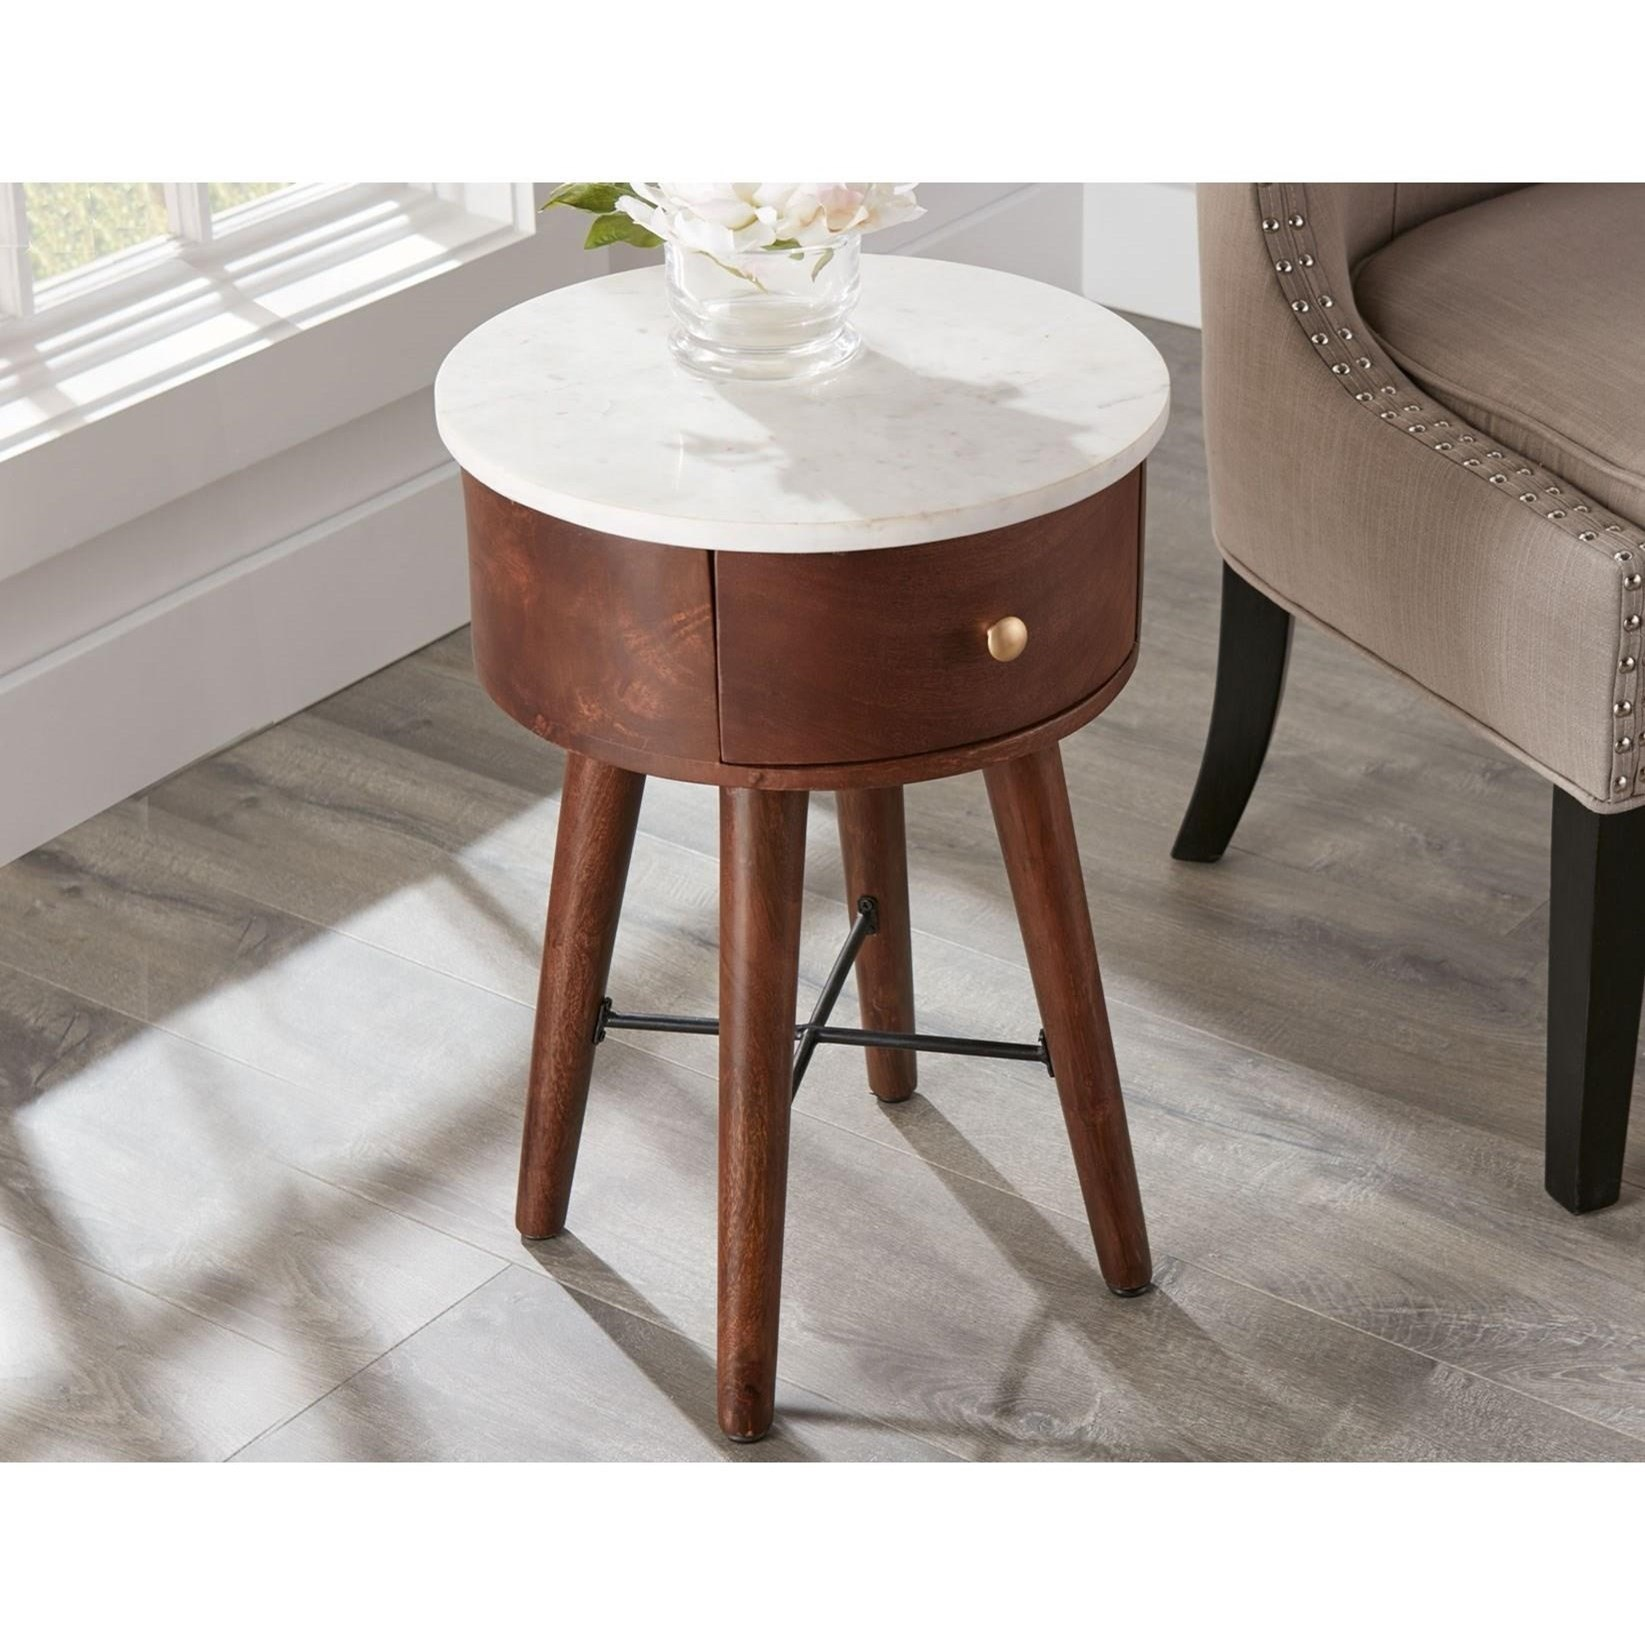 Bangalore Accent Table by Steve Silver at Standard Furniture